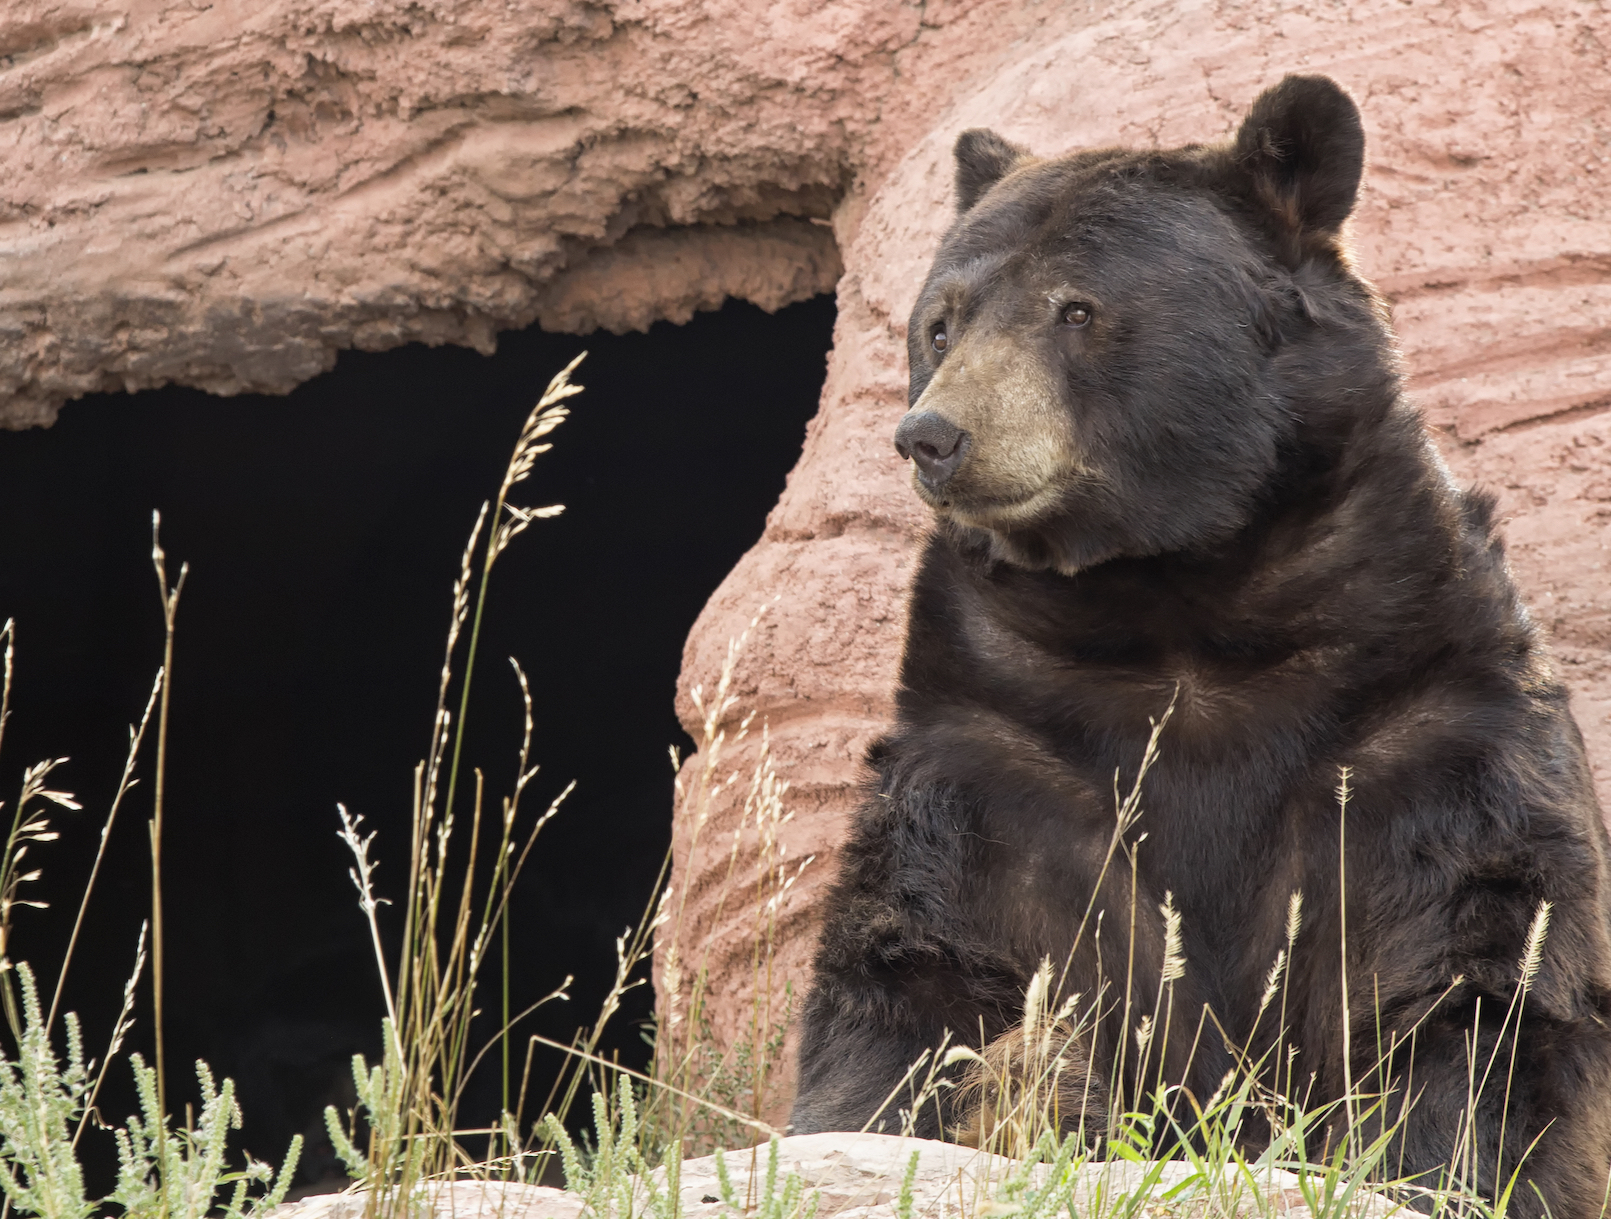 According to a new study, archaeologists have found evidence that ancient humans attacked massive bears and took over their caves.